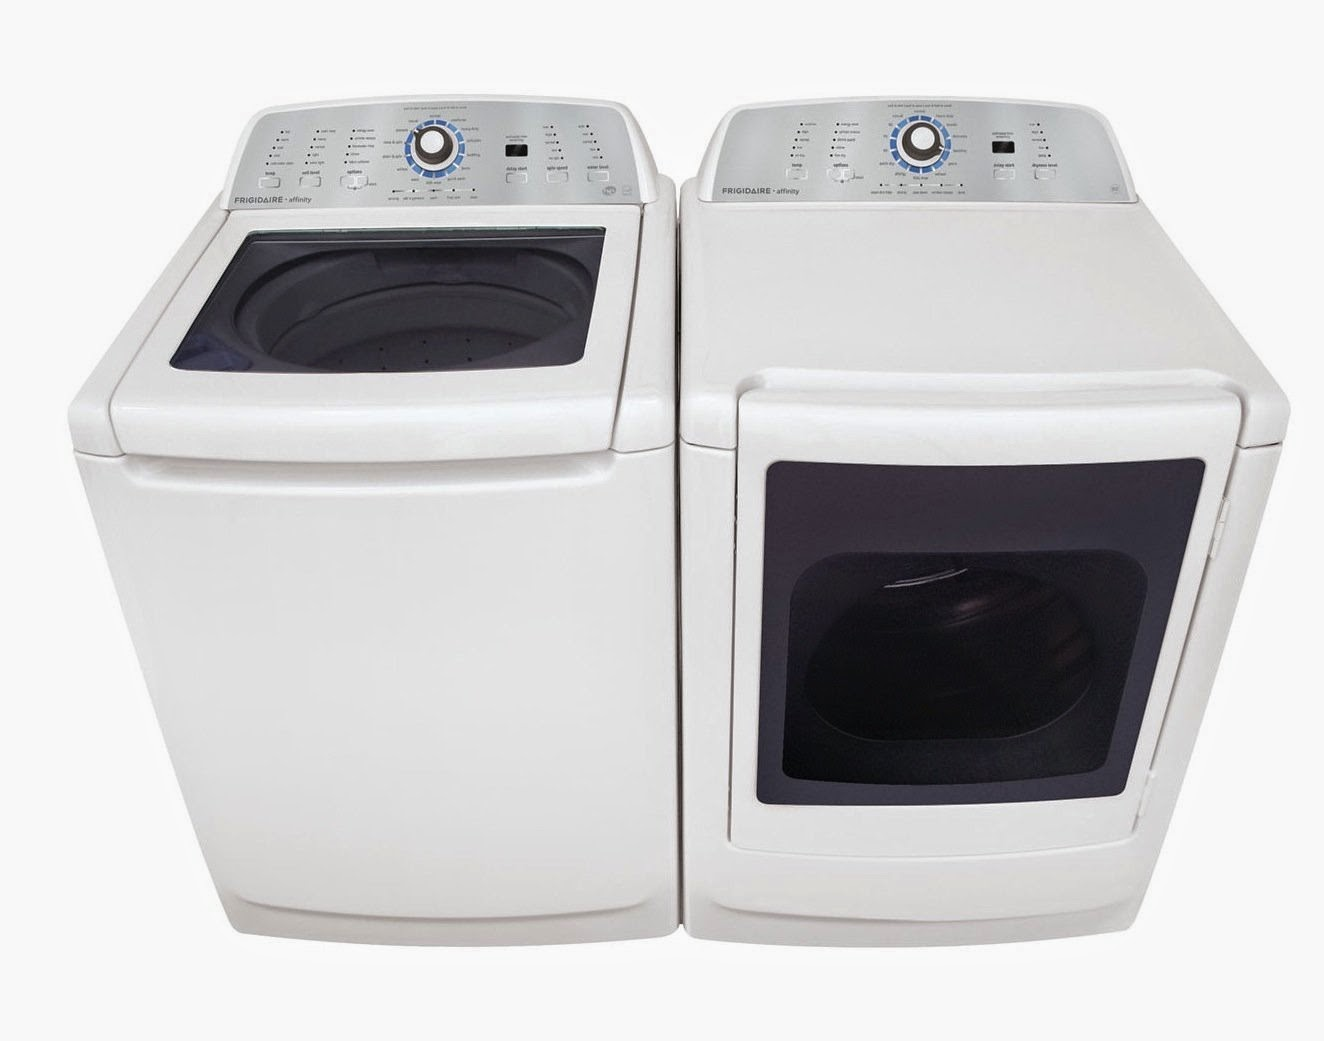 Washer And Dryer For Sale Cheap Washer And Dryer Sets For